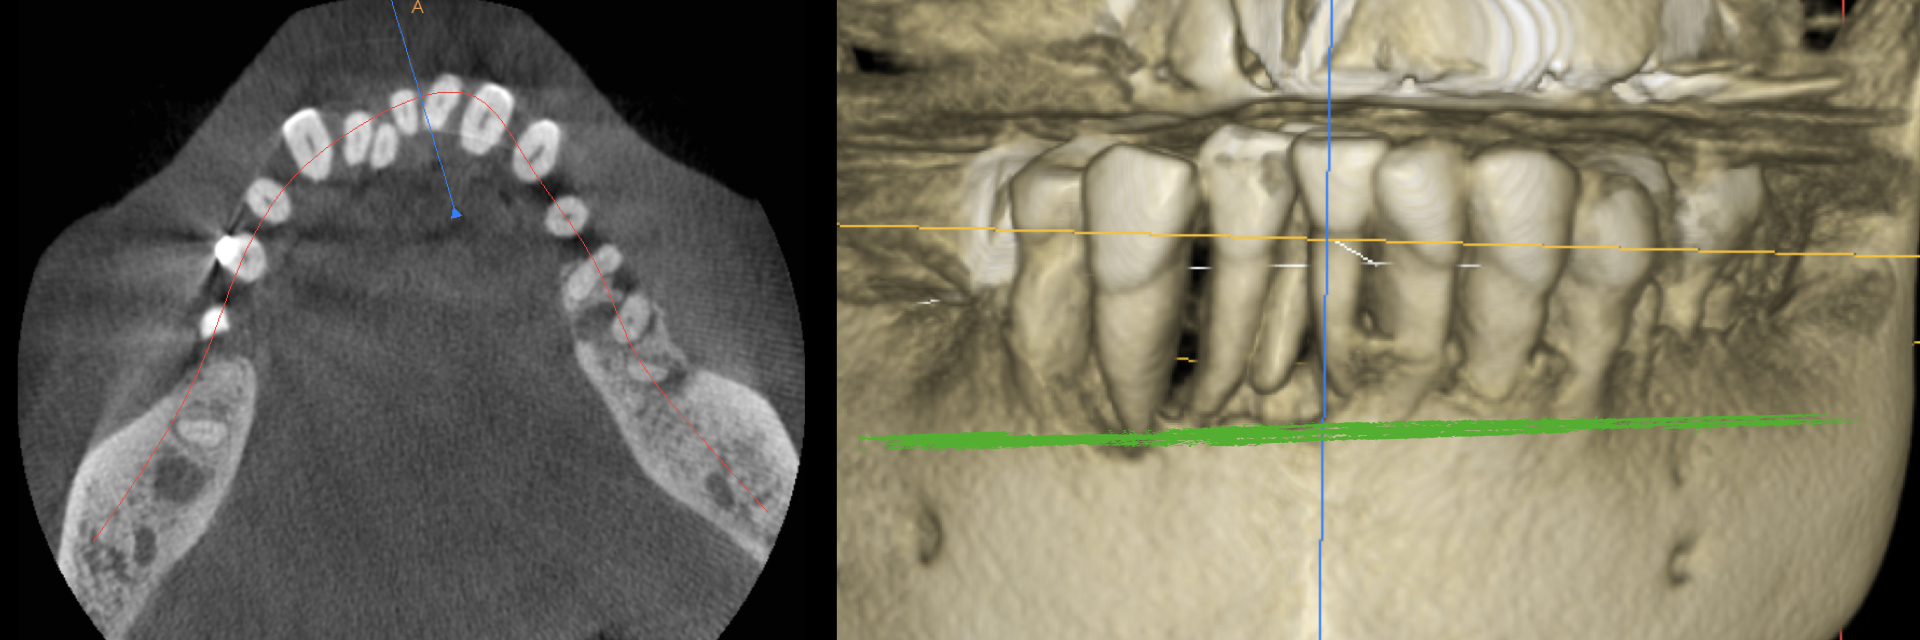 Digital-Workflow-for-Full-Arch-Implant-Supported-Teeth-Chrome-GuidedSmile-Kazemi-Oral-Surgery-Bethesda-Implant-Dentist.005